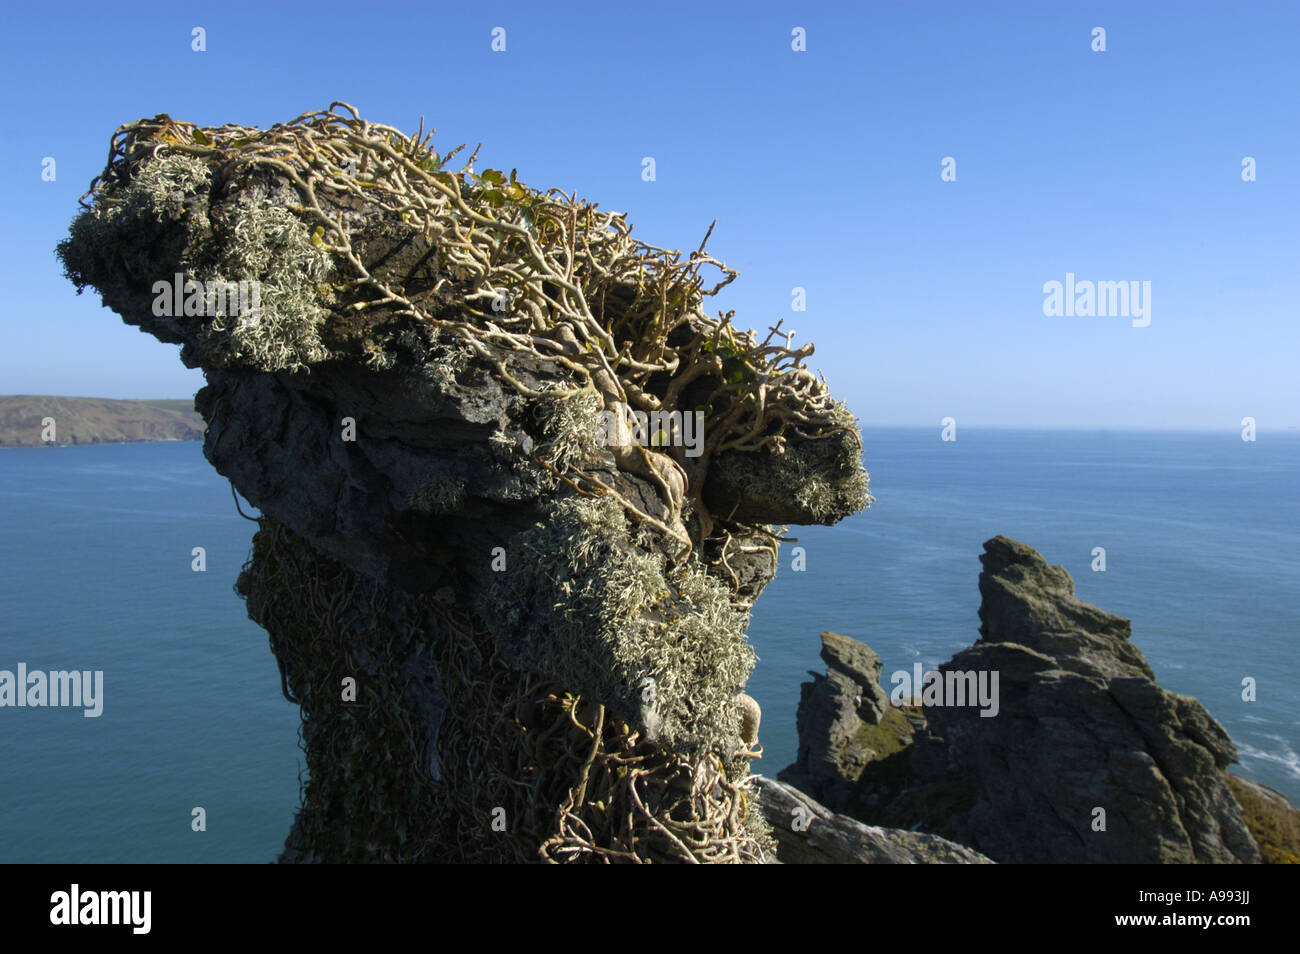 Rock formations in Starehole Bay near Bolt Head on the South West Coast in south Devon England Stock Photo